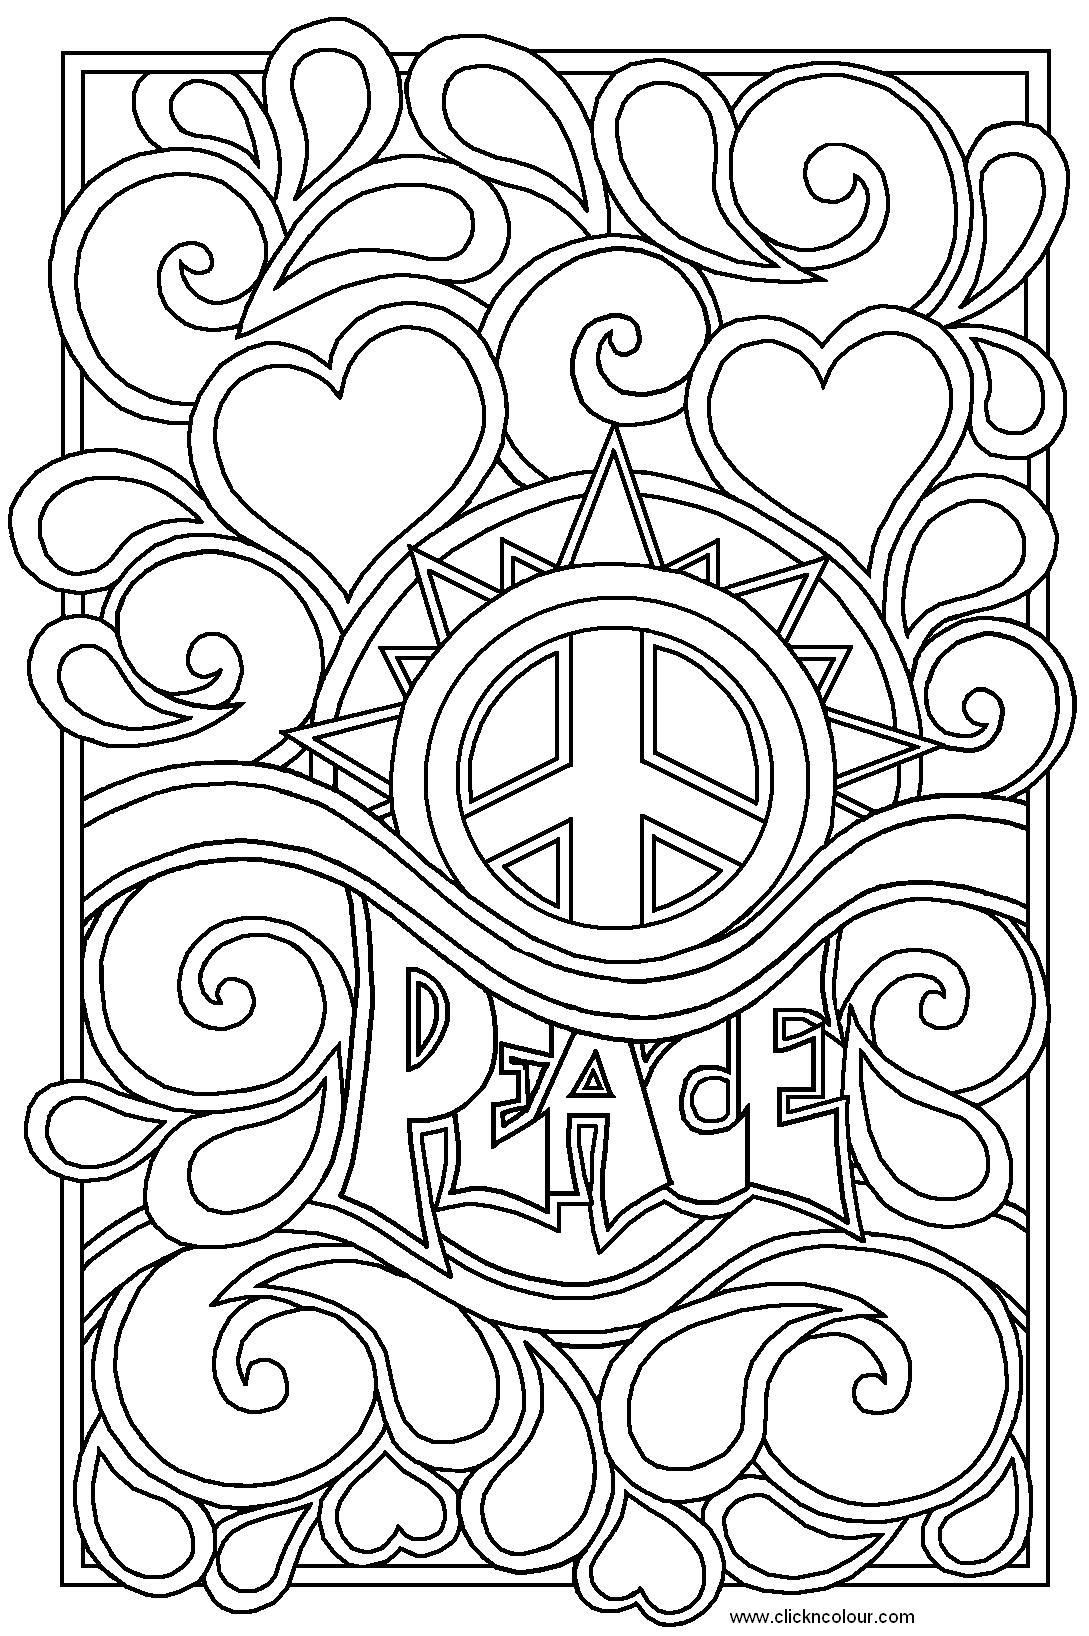 1089x1636 Heart Coloring Pages For Teenagers Peace And Love Colouring